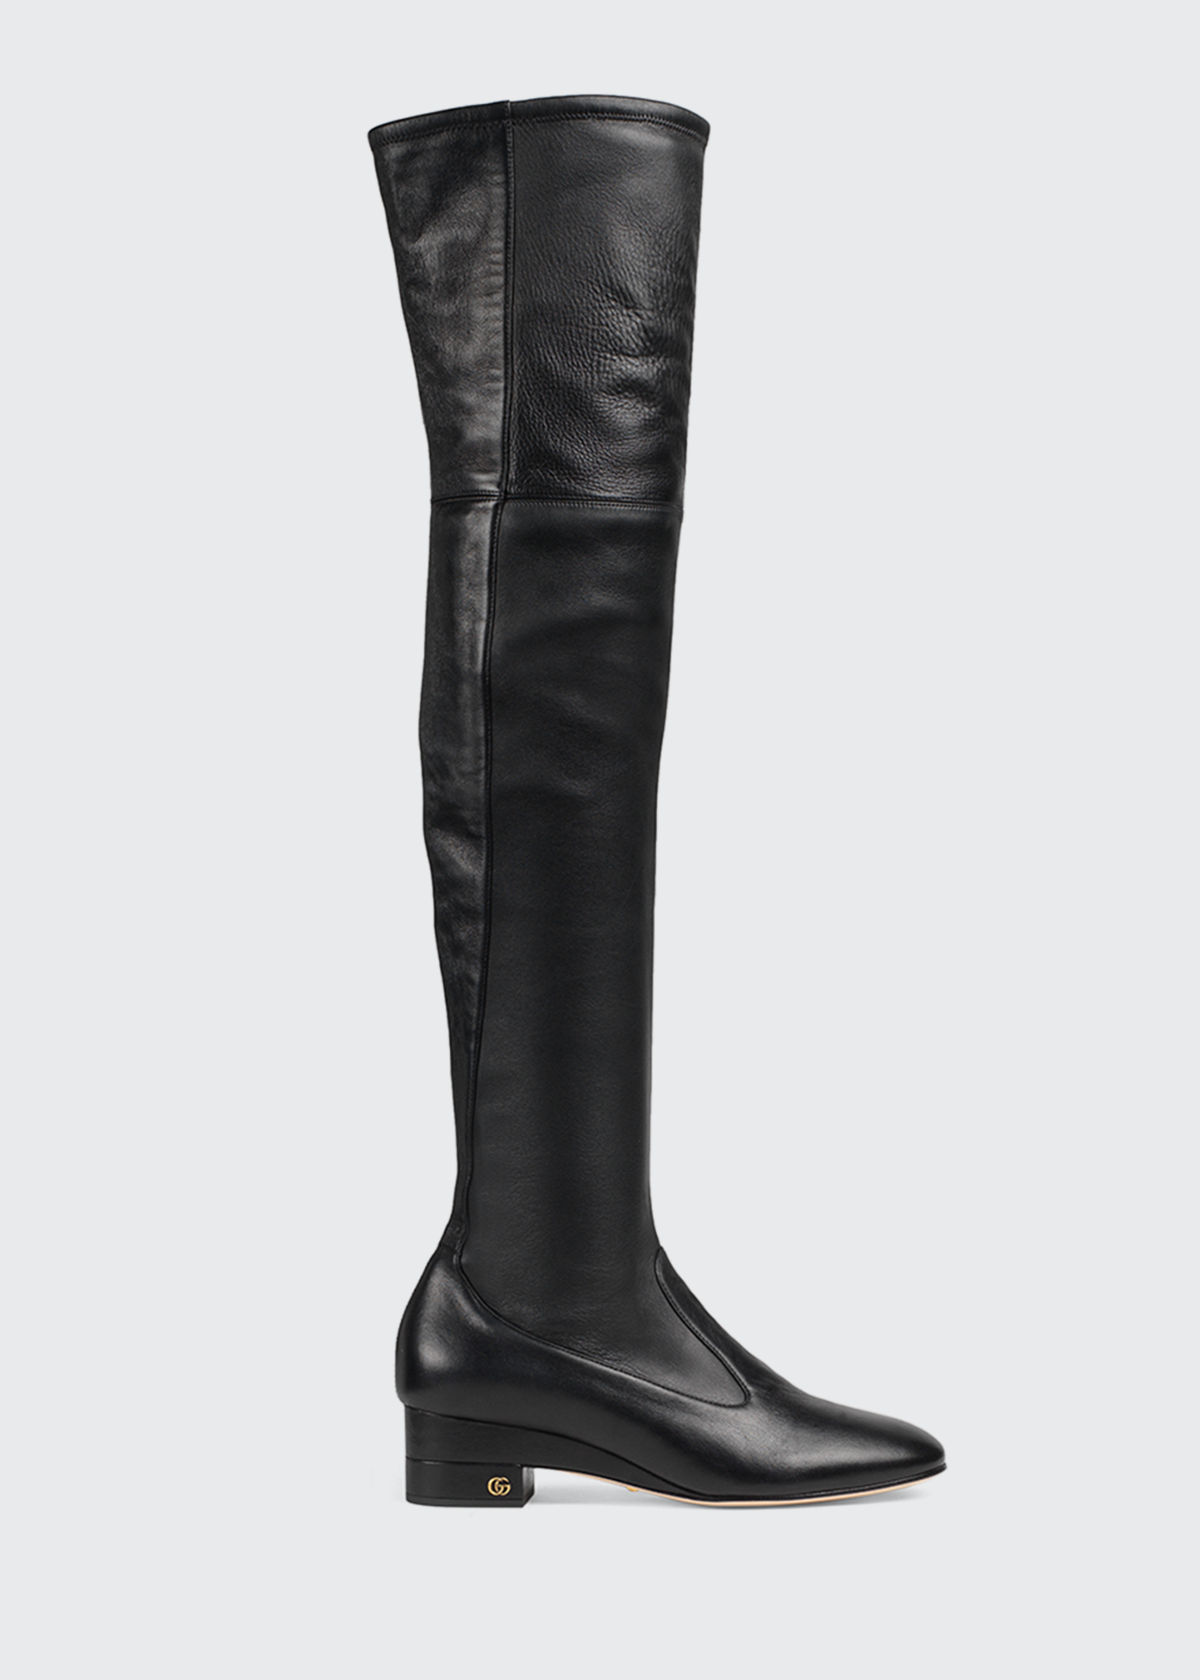 Gucci Boots CLAUS 45MM OVER-THE-KNEE BOOTS